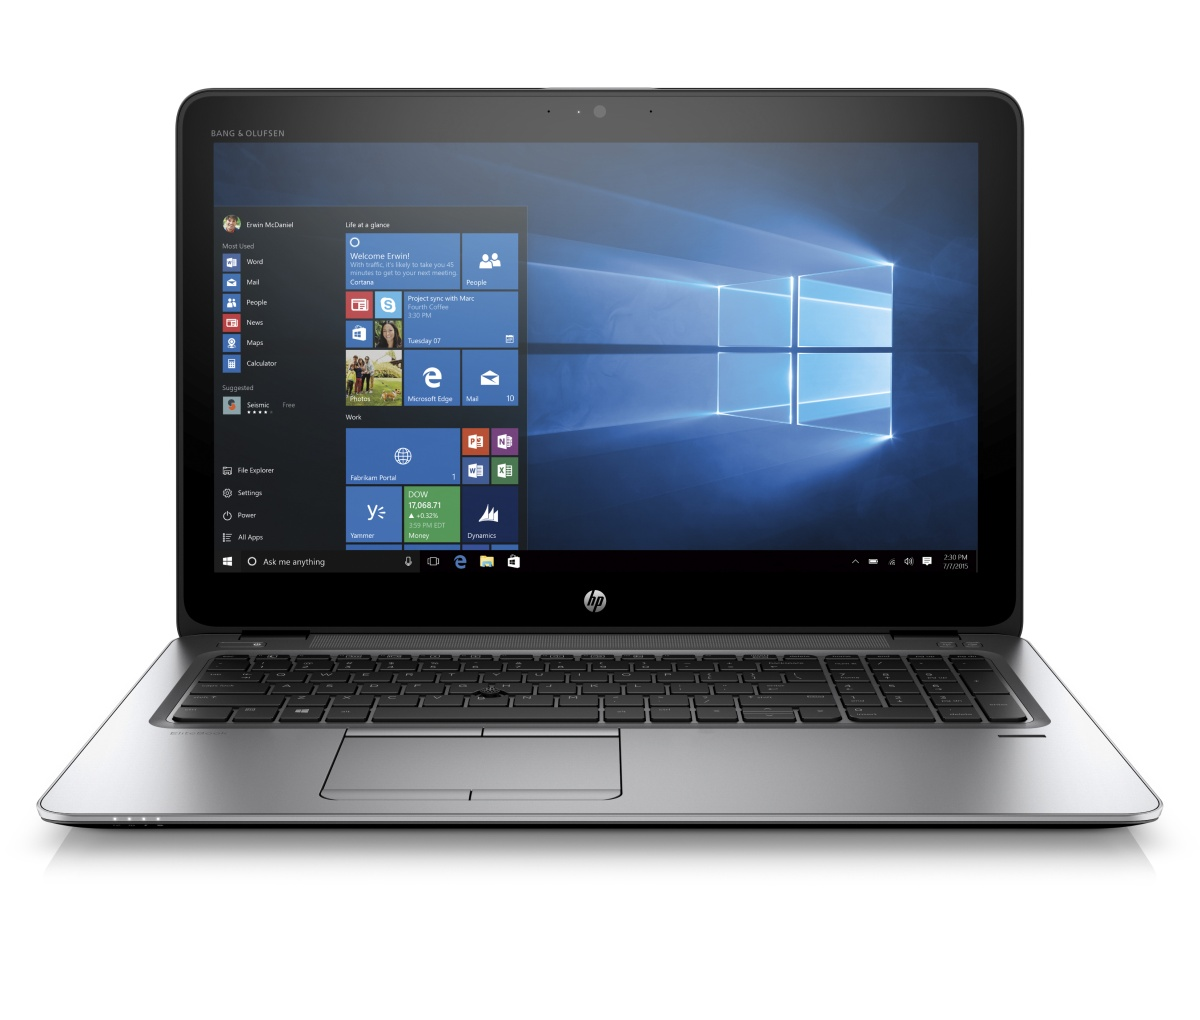 HP EliteBook 850 G3 i7-6500U/8GB/256GB SSD/ GFX 15,6'' FHD/backlit keyb/Win 10 Pro + Win 7 Pro